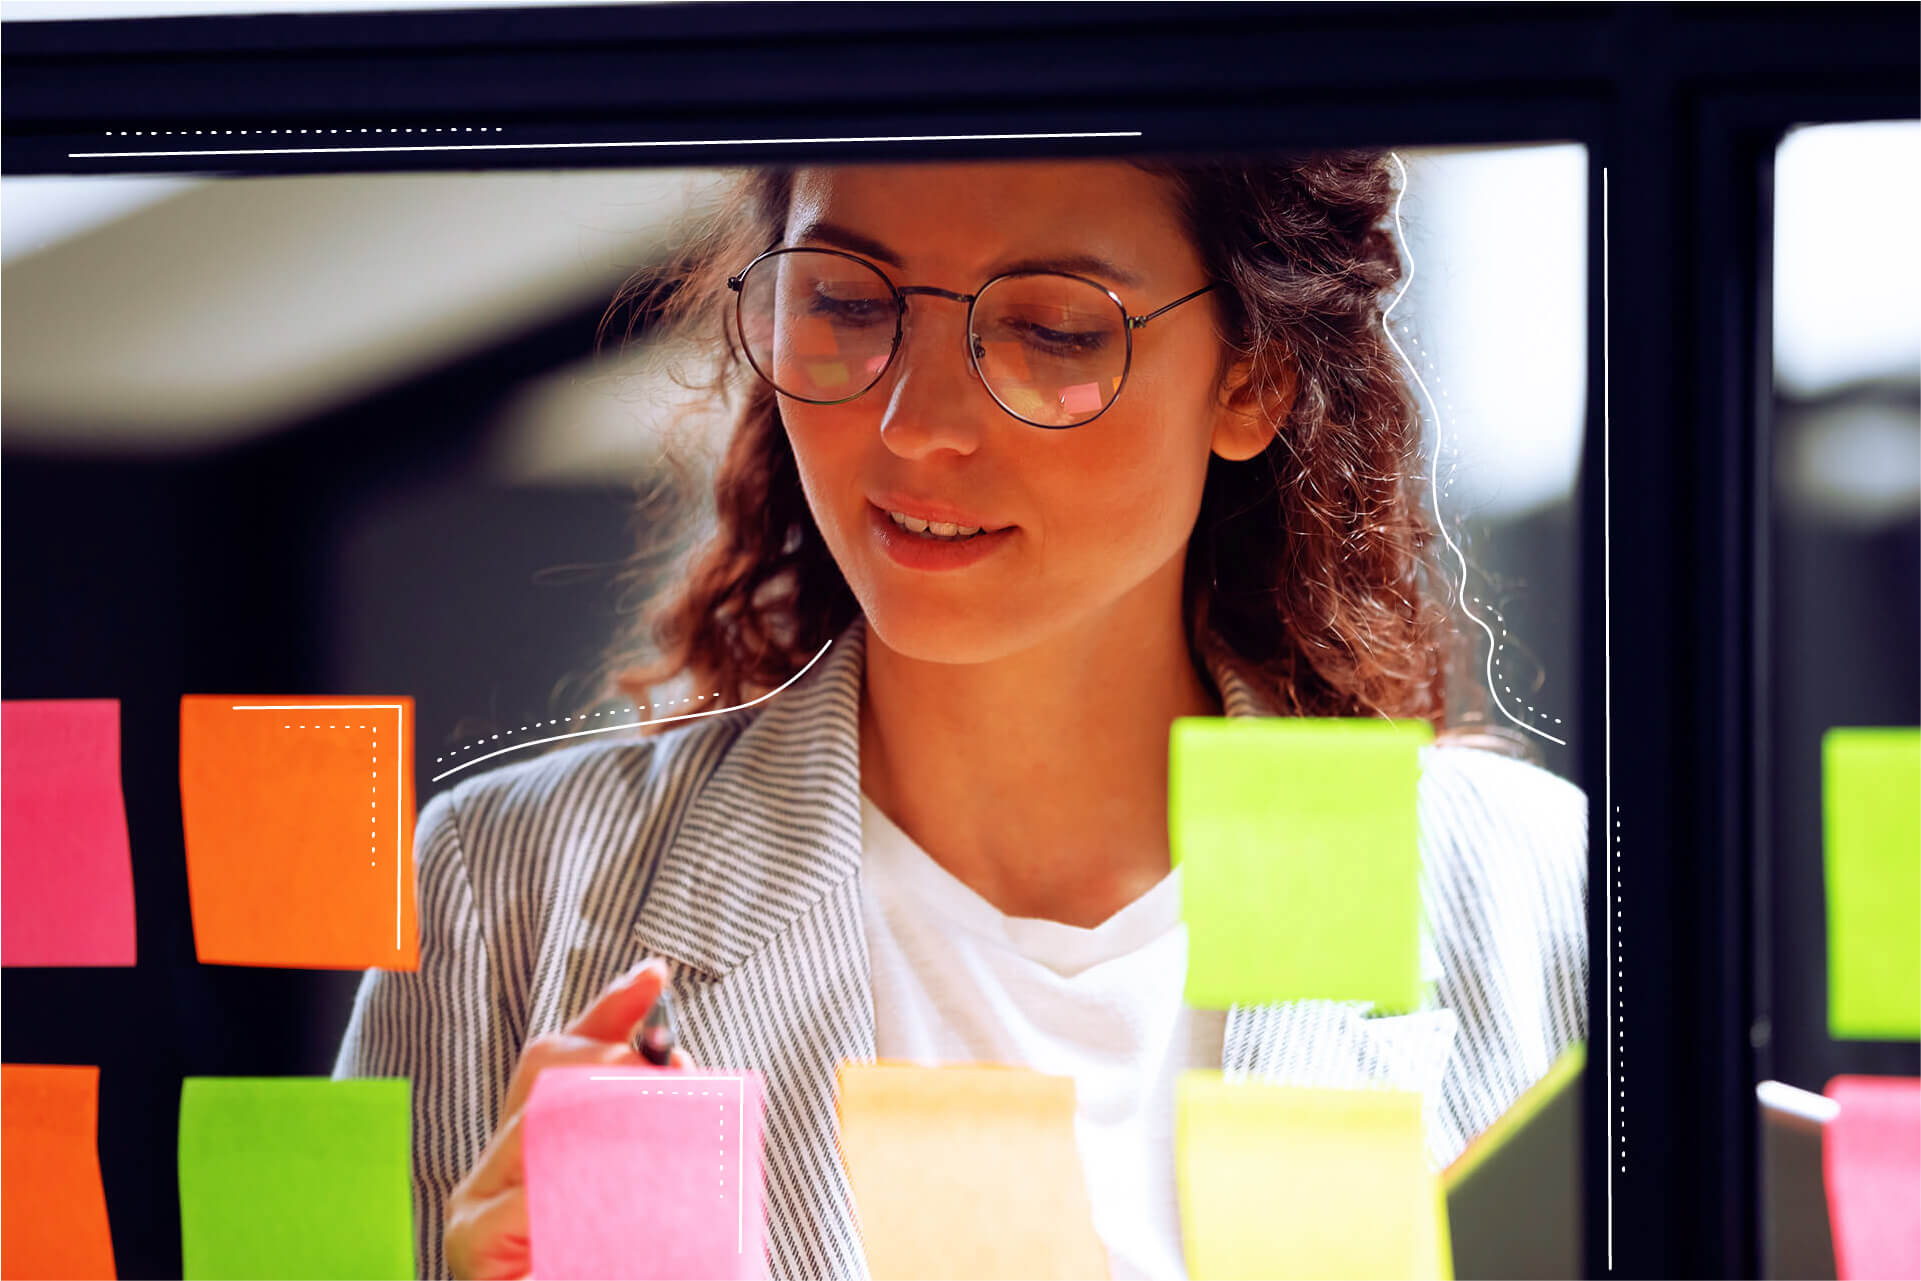 Woman sticking post-it notes on glass pane | eggheads.net